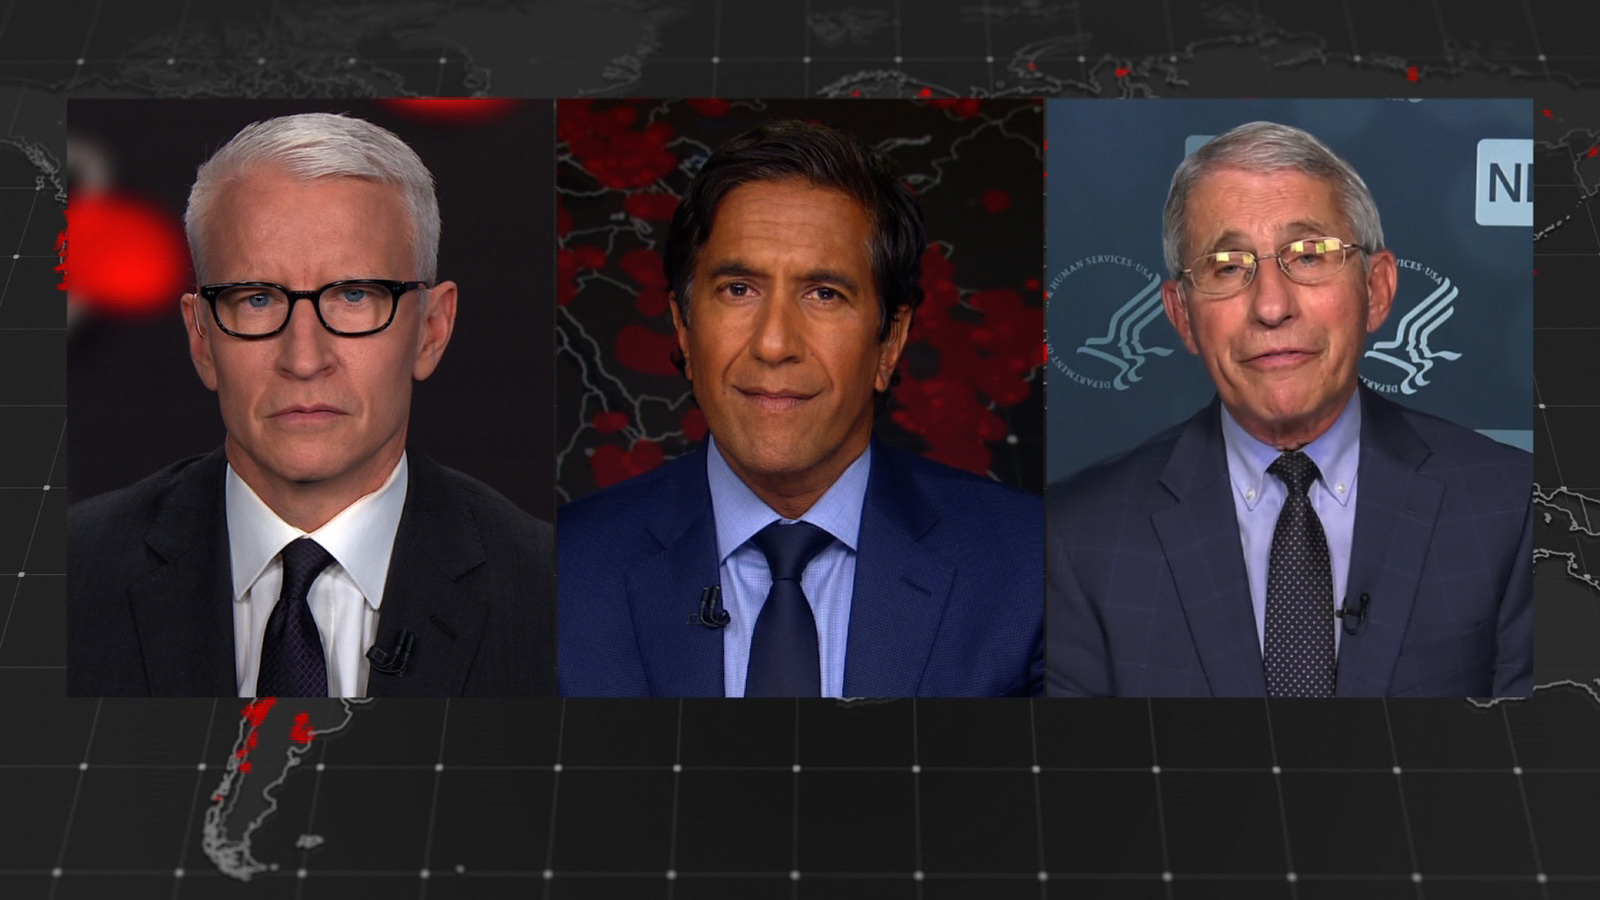 CNN's Anderson Cooper, Sanjay Gupta, and Dr. Anthony Fauci